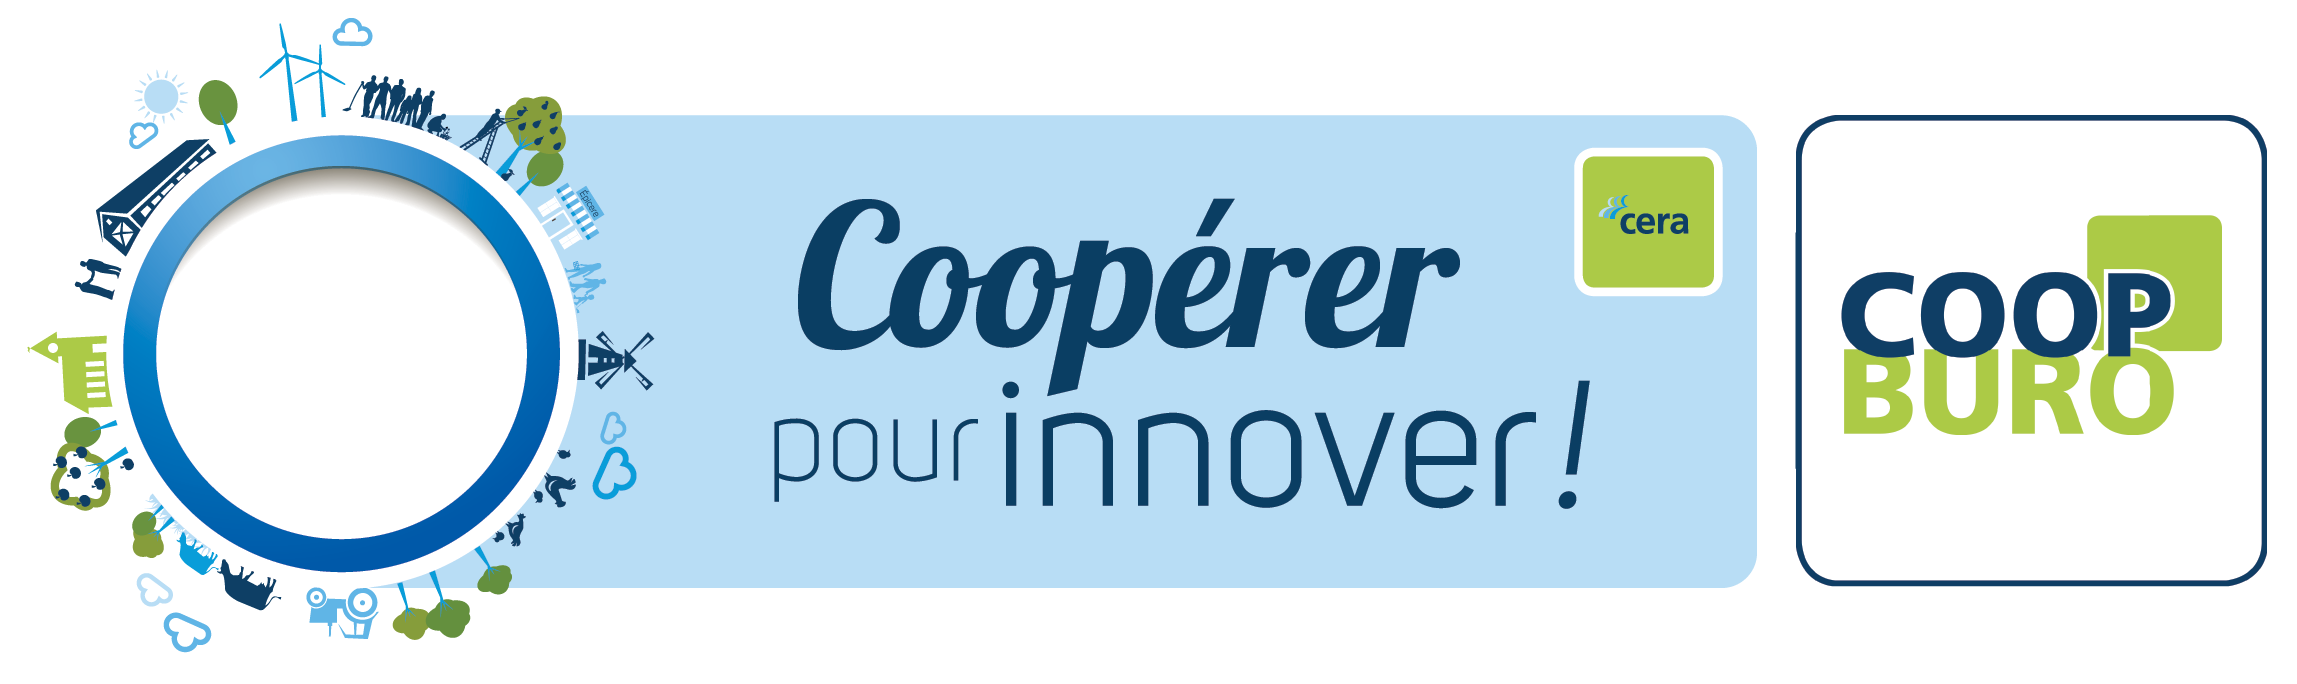 ban-coop_rer-pour-innover.png